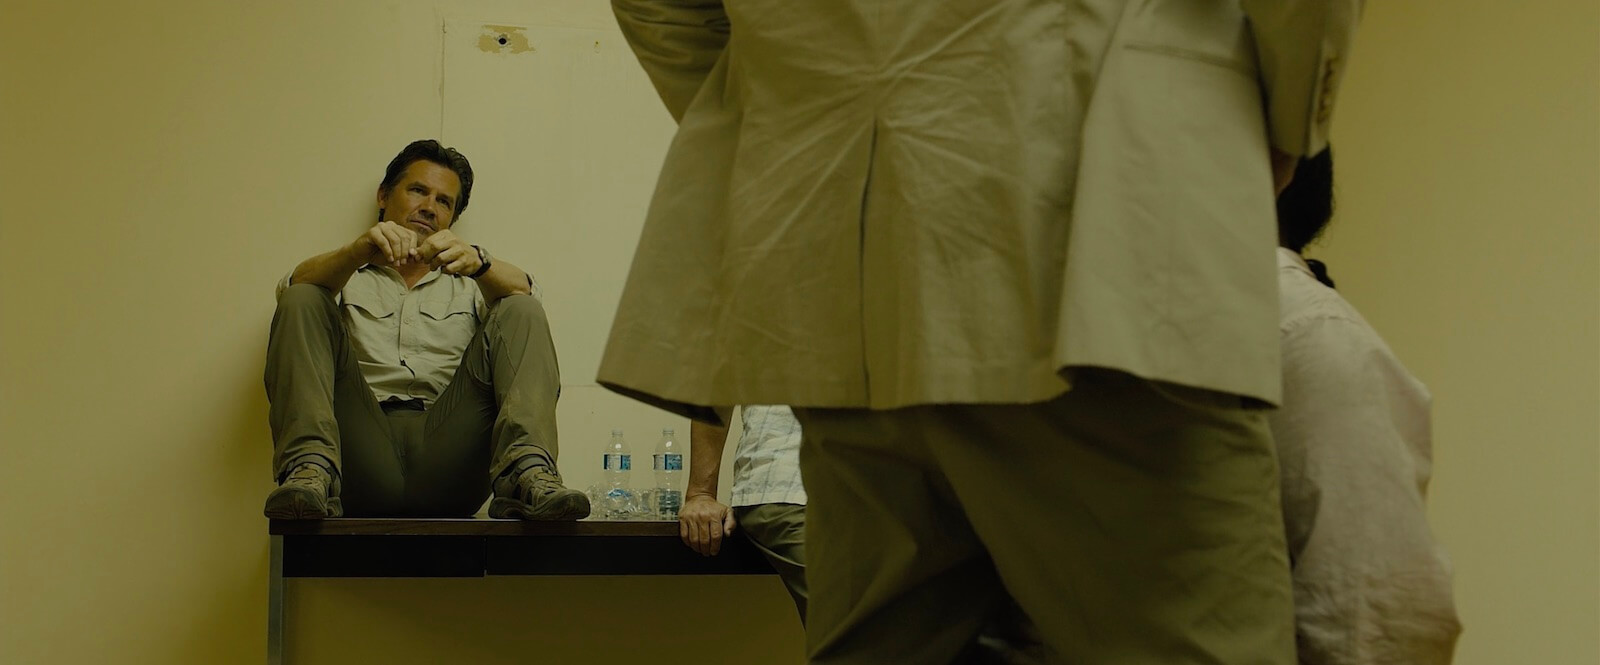 Roger Deakins Sicario Cinematography • Cutting the frame